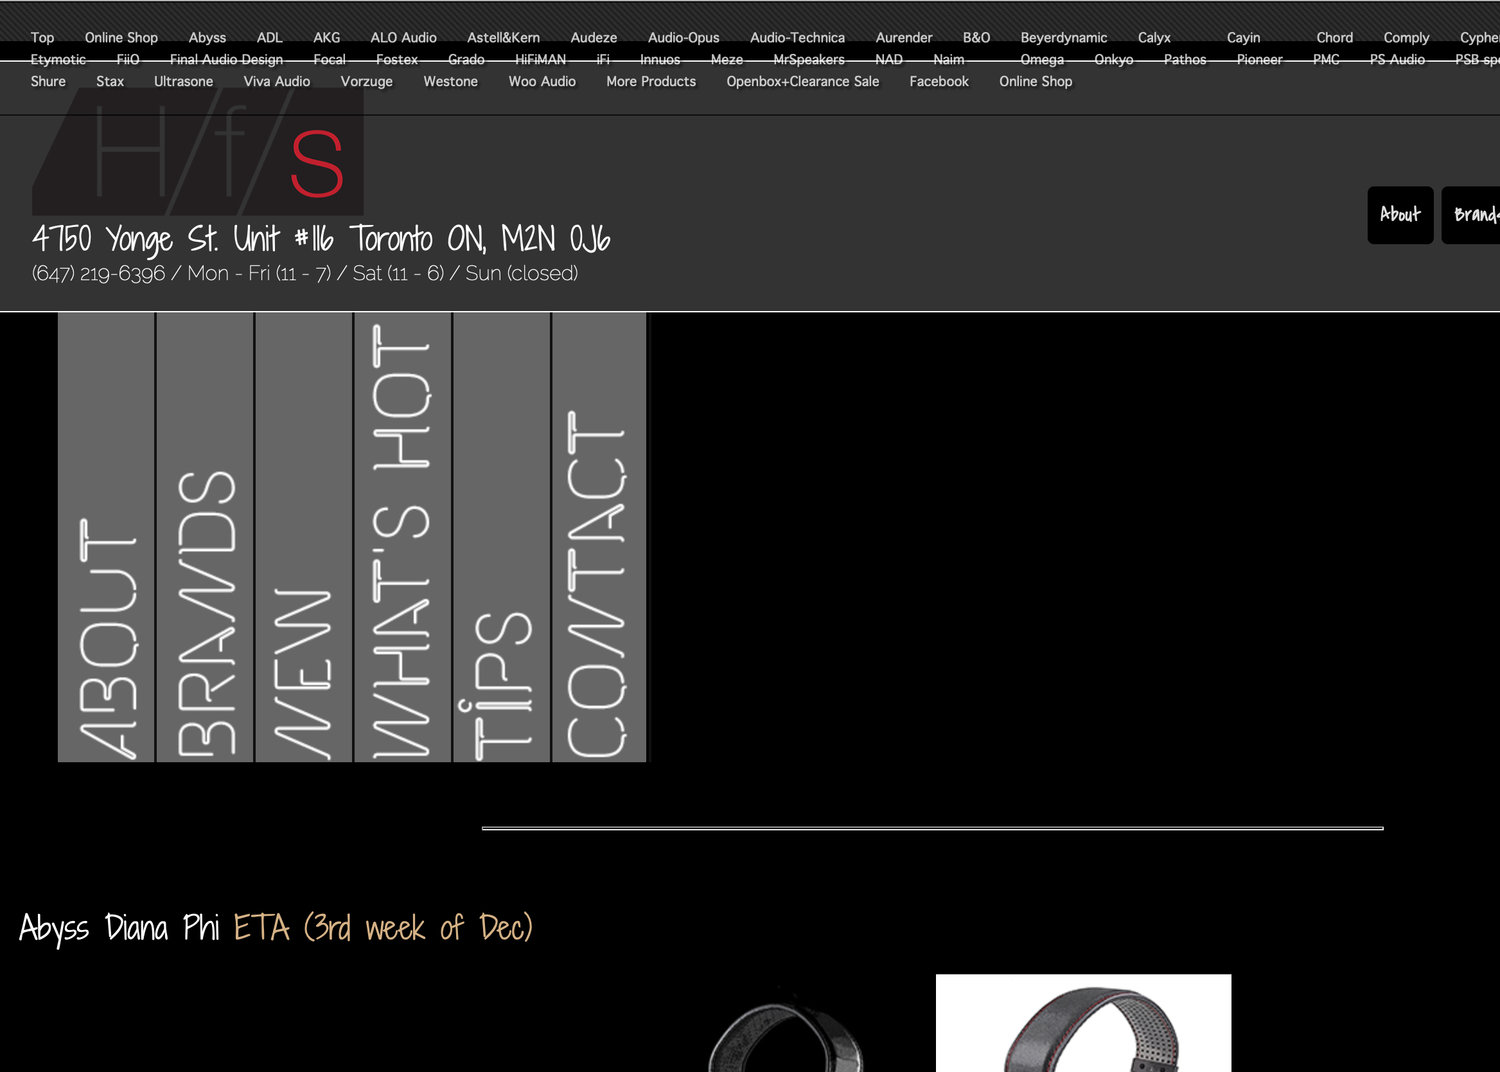 OUT WITH THE OLD, LAYOUT OF HEADFONESHOP'S NEW WEBSITE